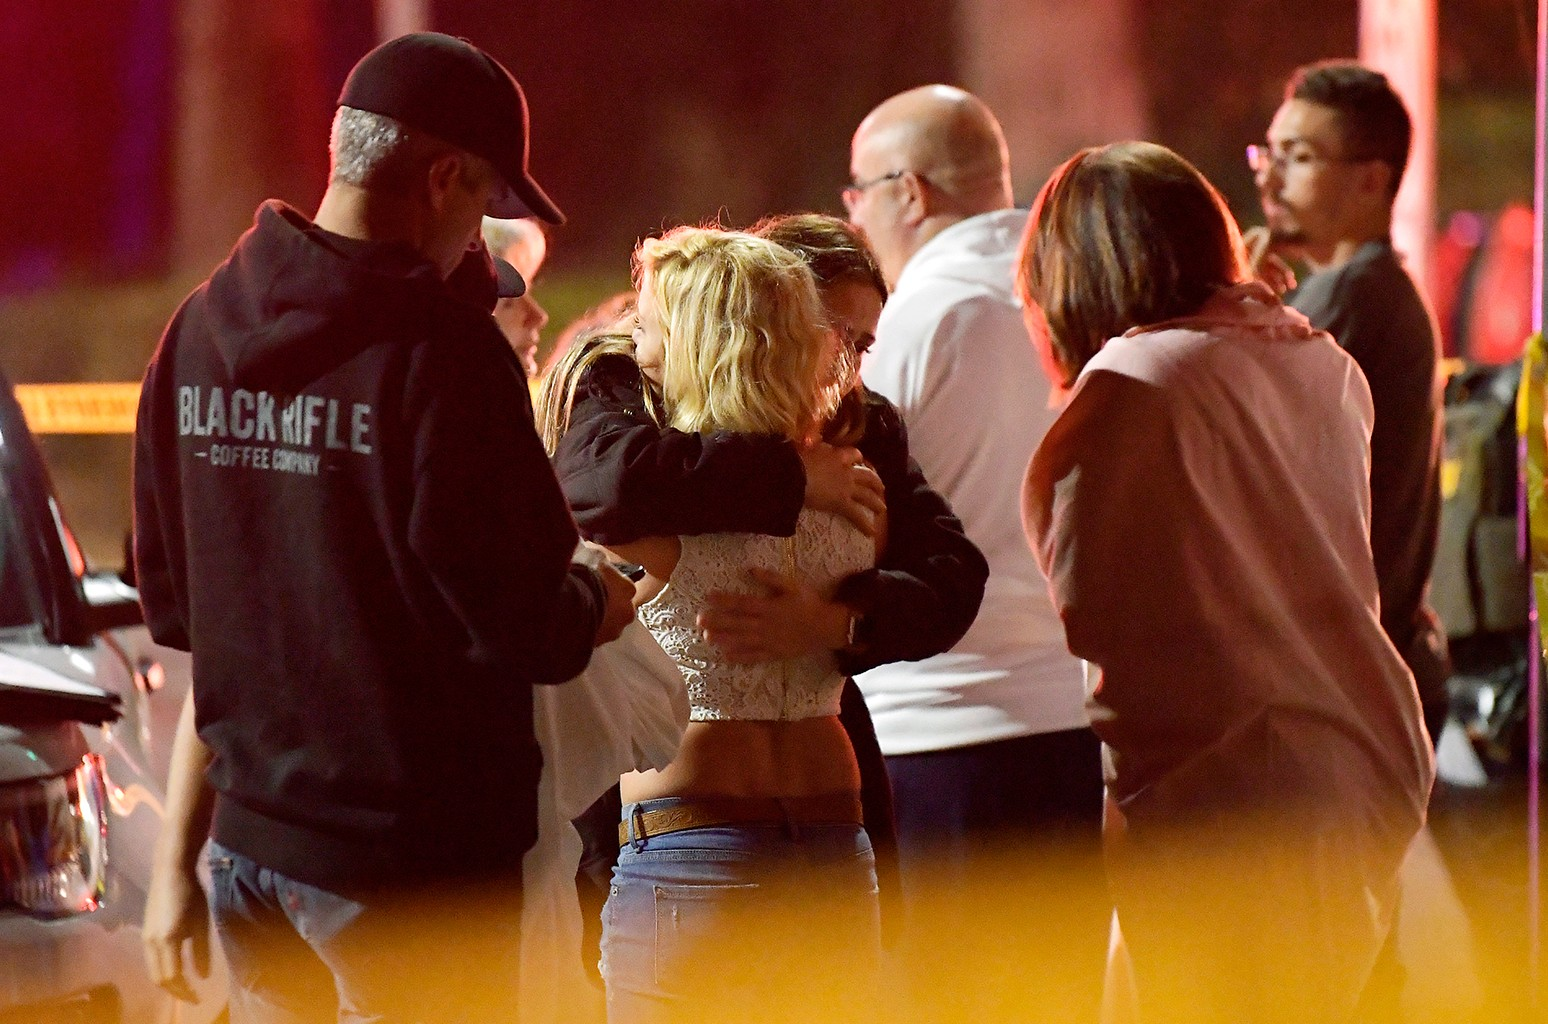 """People comfort each other as they stand near the scene Thursday, Nov. 8, 2018, in Thousand Oaks, Calif., where a gunman opened fire Wednesday inside a country dance bar crowded with hundreds of people on """"college night,"""" wounding multiple people including"""